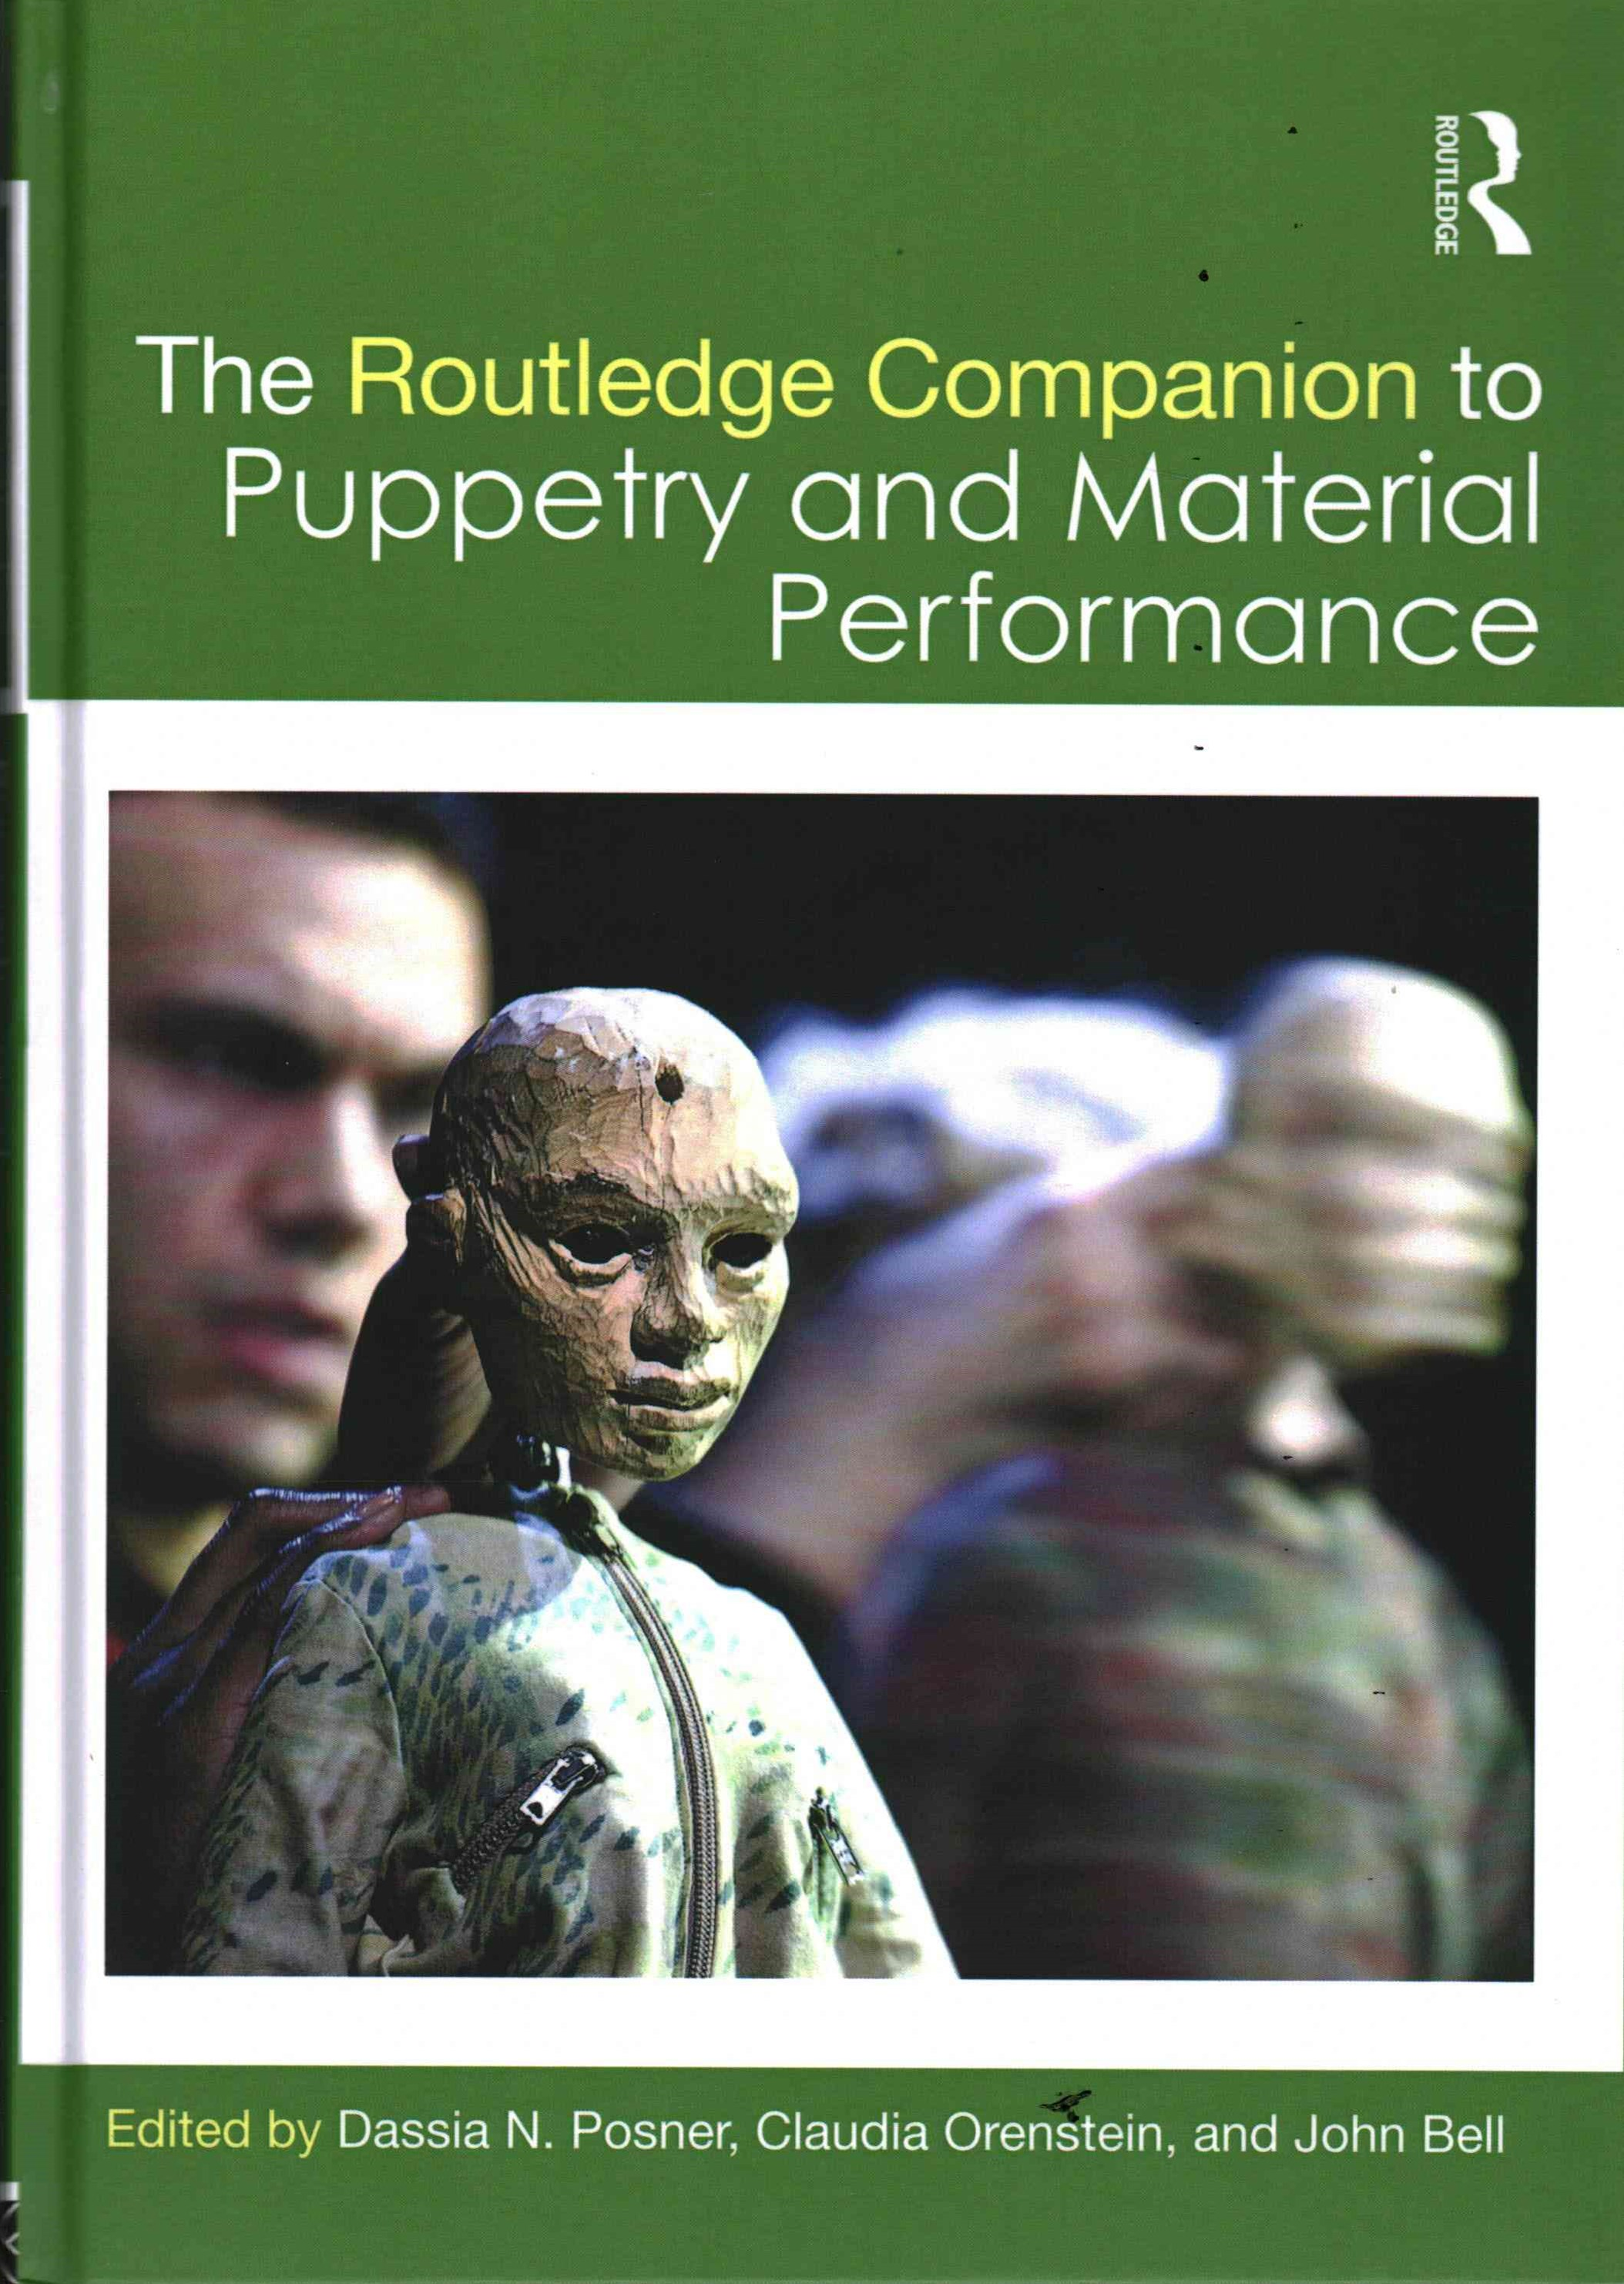 Routledge Companion to Puppetry and Material Performance